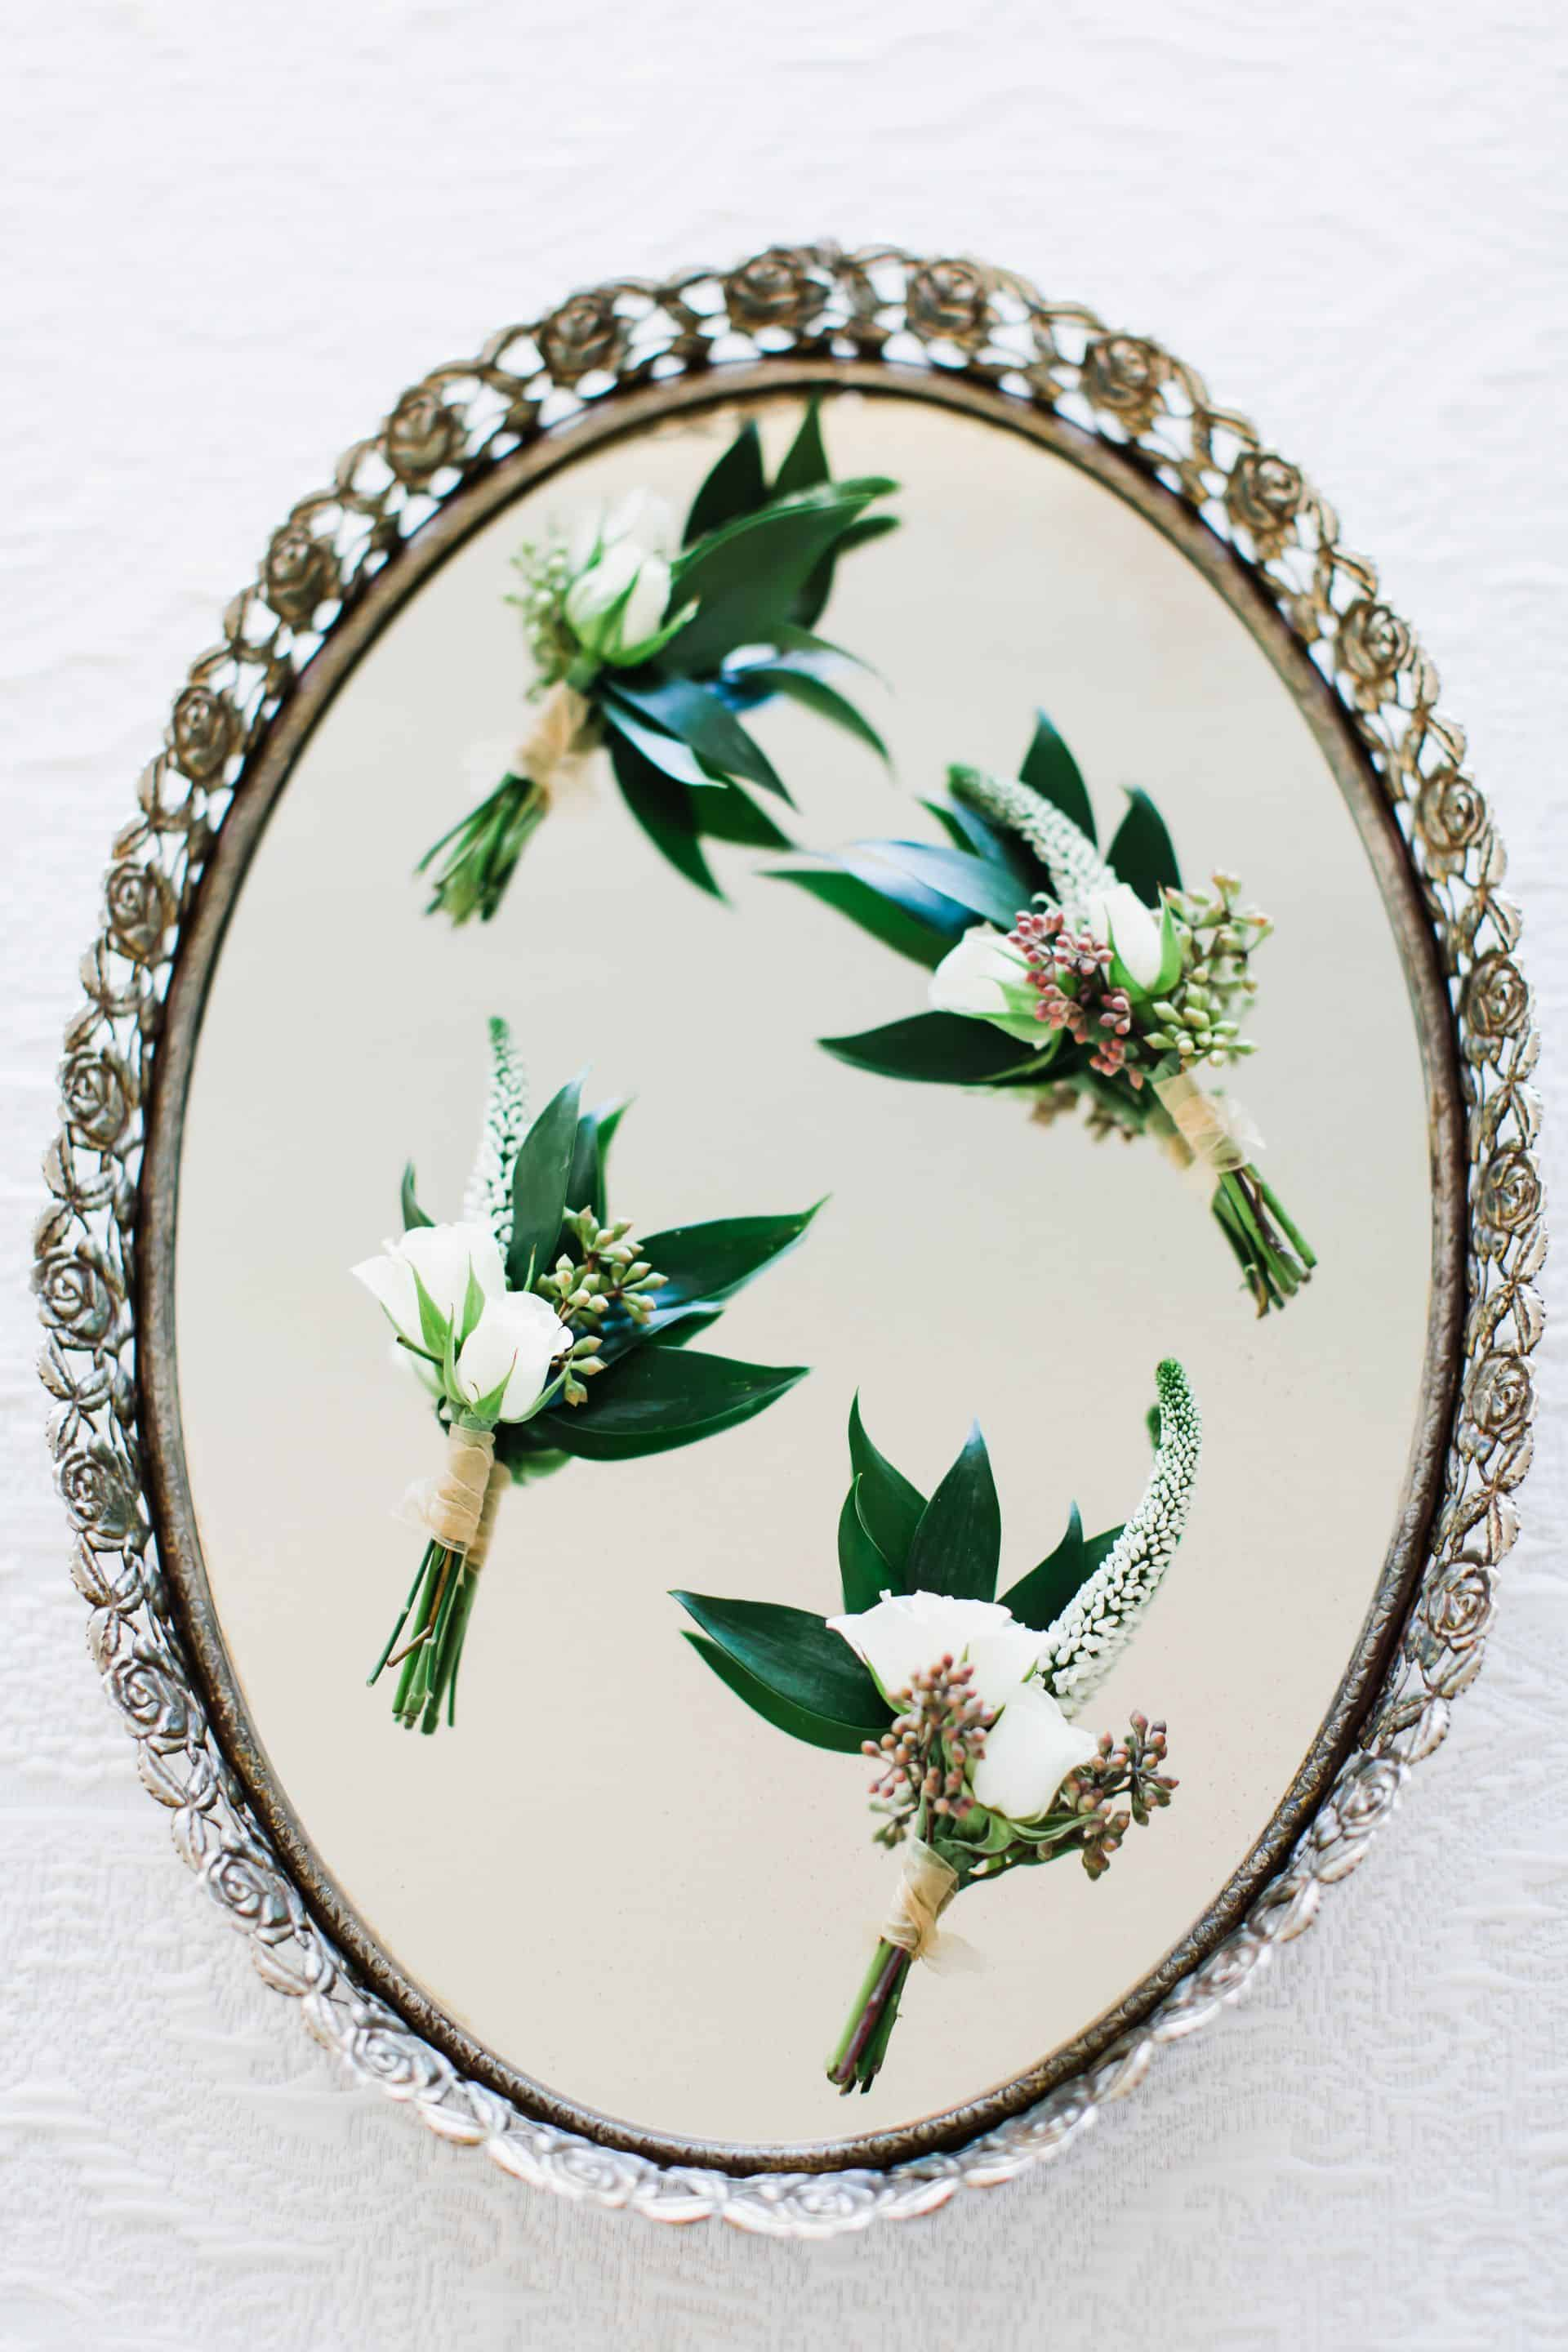 Petite white boutonniere | Maui's Angels